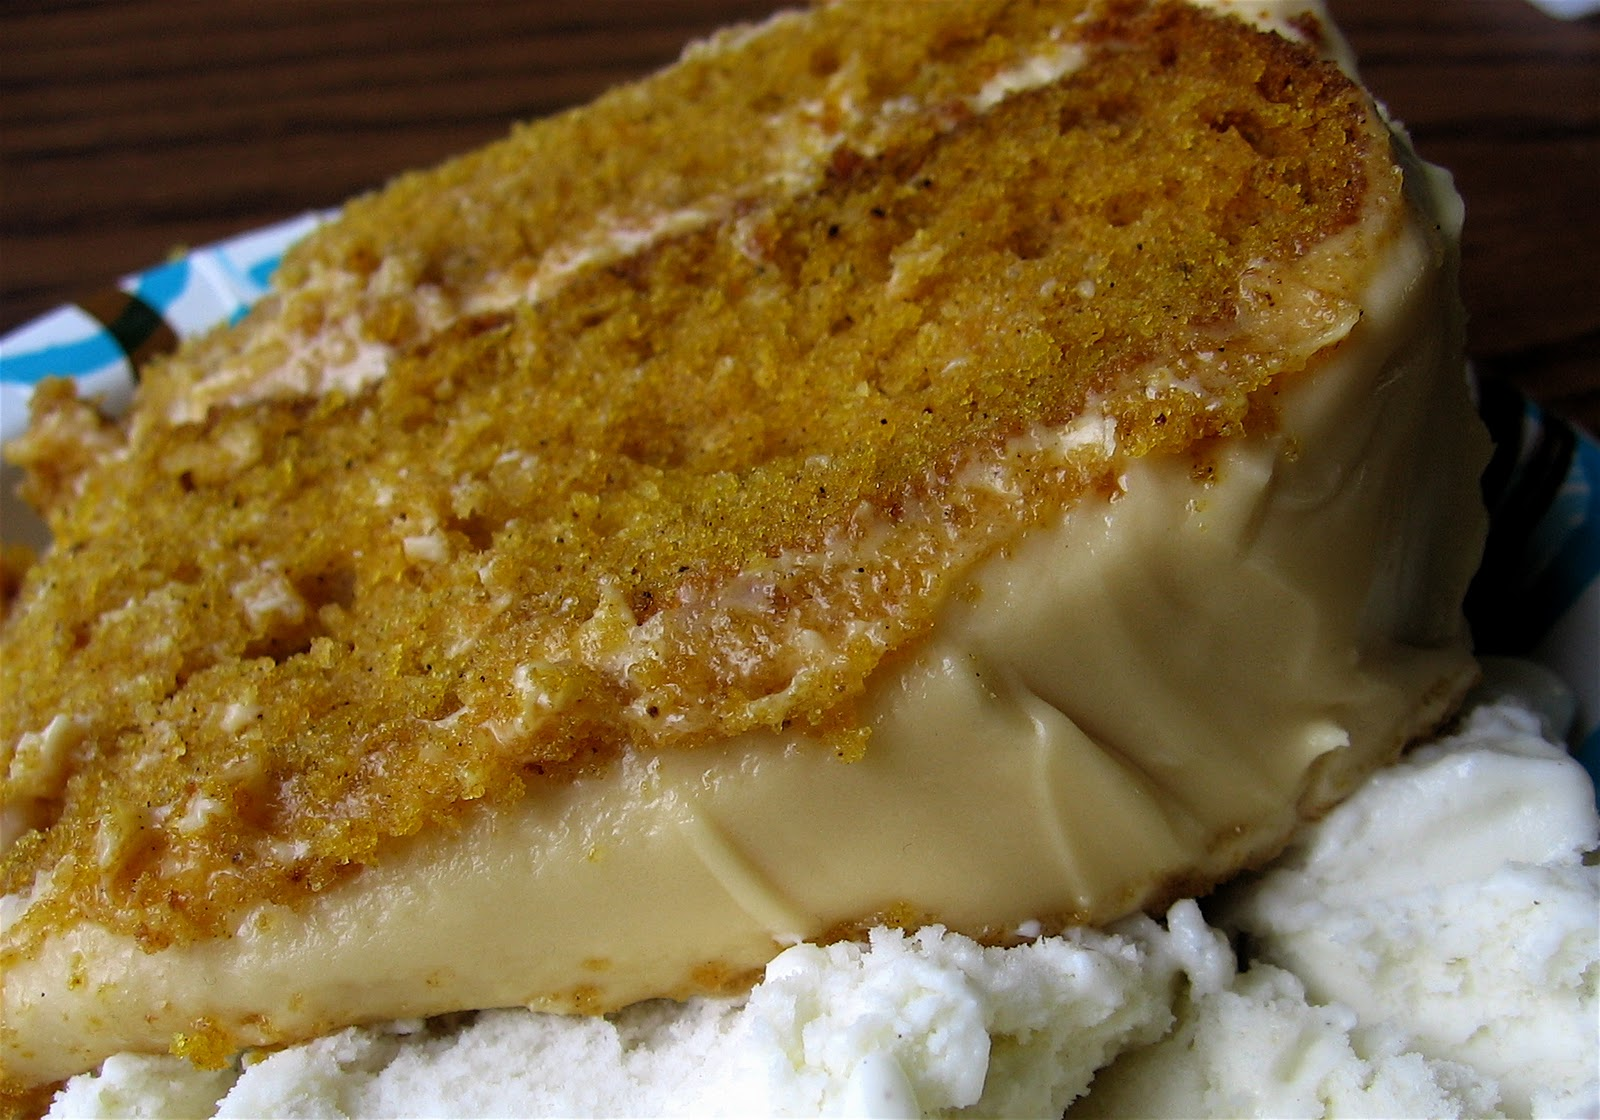 ... Laughter: Pumpkin Spice Layer cake with Caramel Cream Cheese Frosting